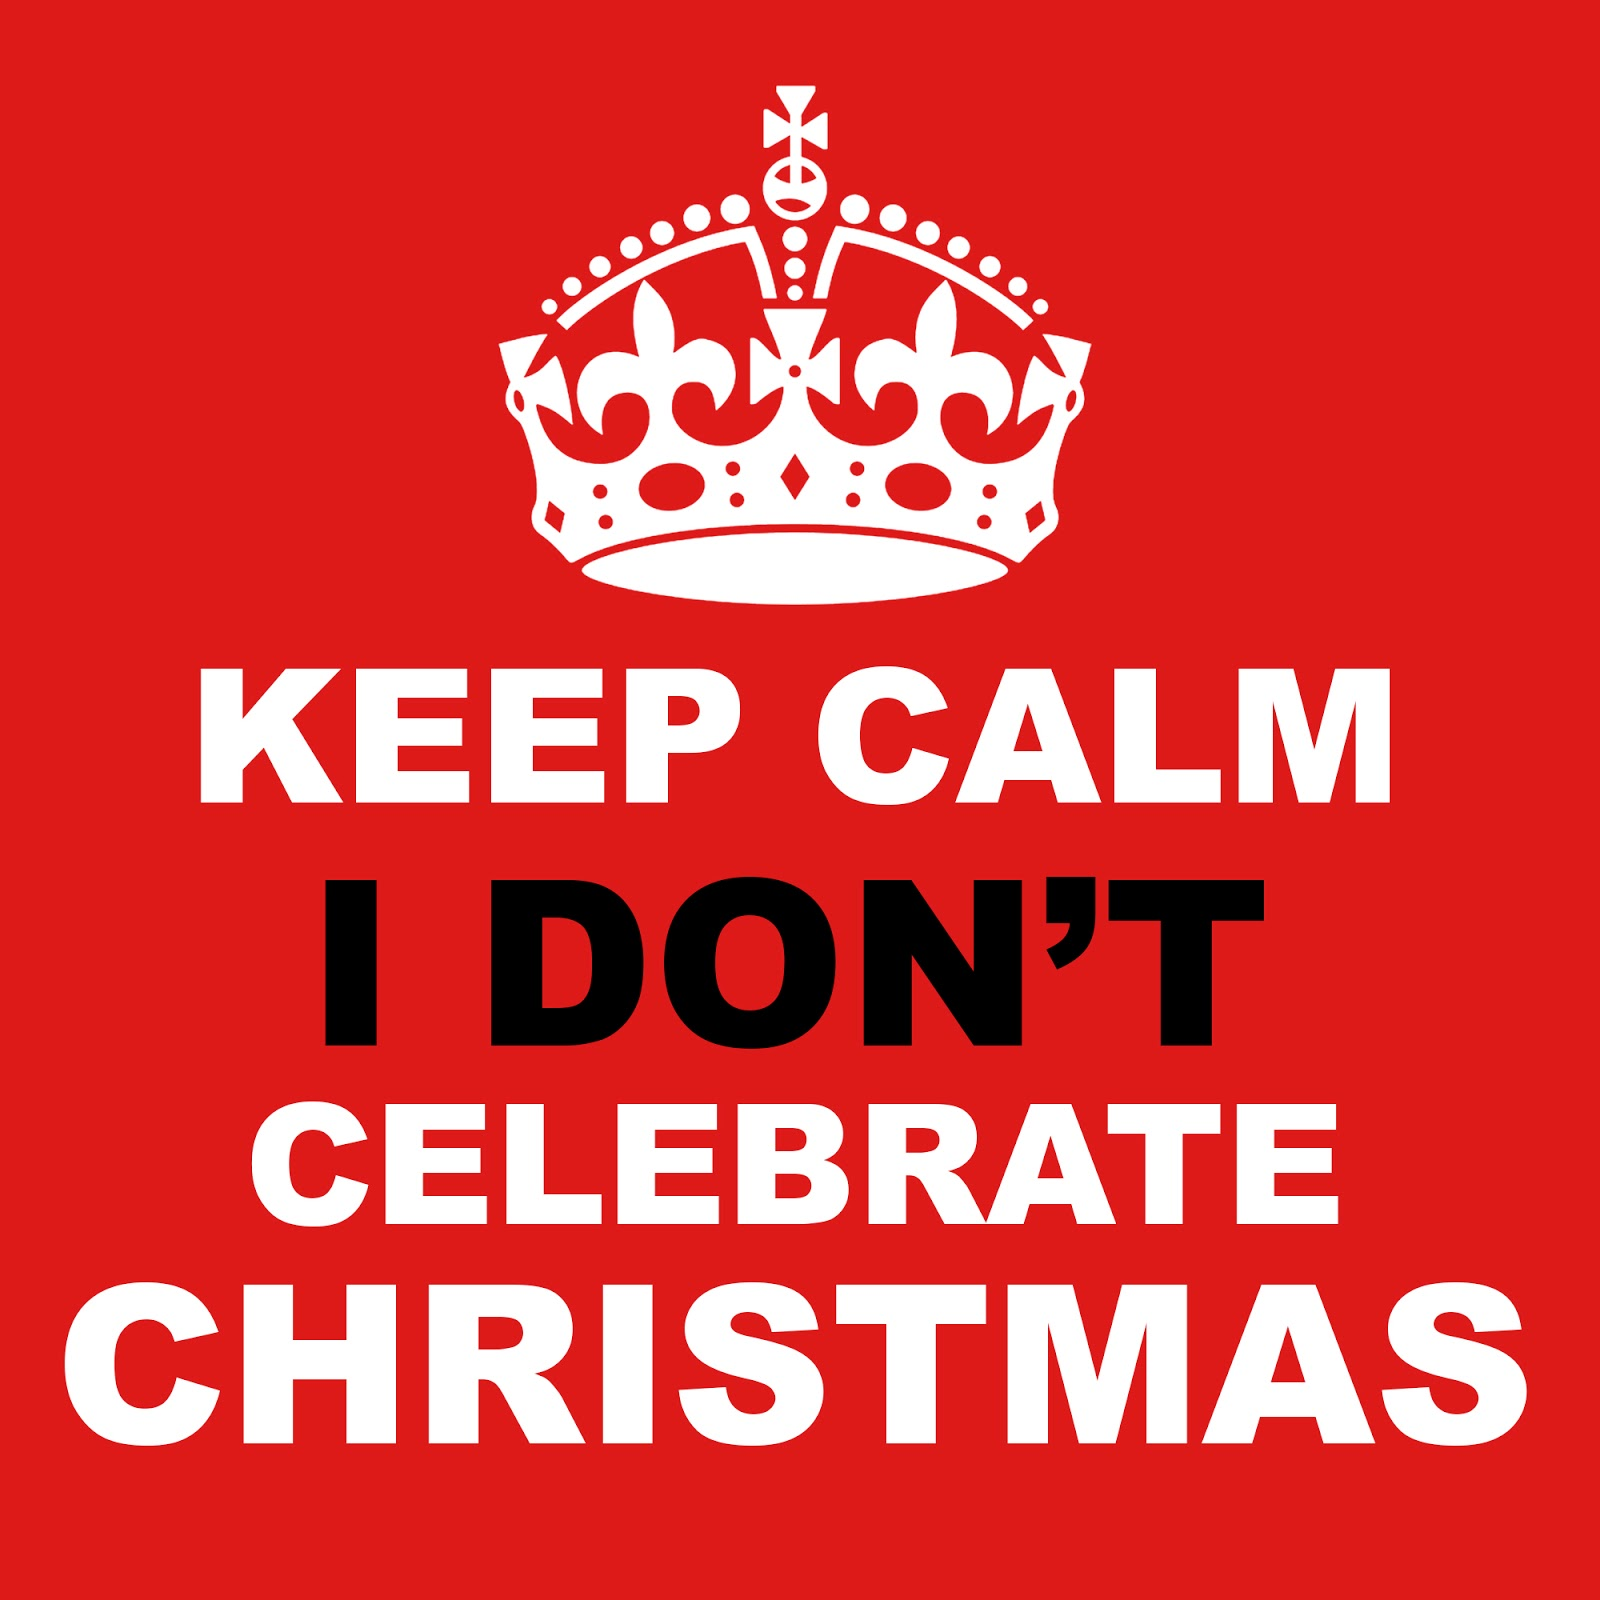 I DON'T CELEBRATE CHRISTMAS | DAILY FOCAL